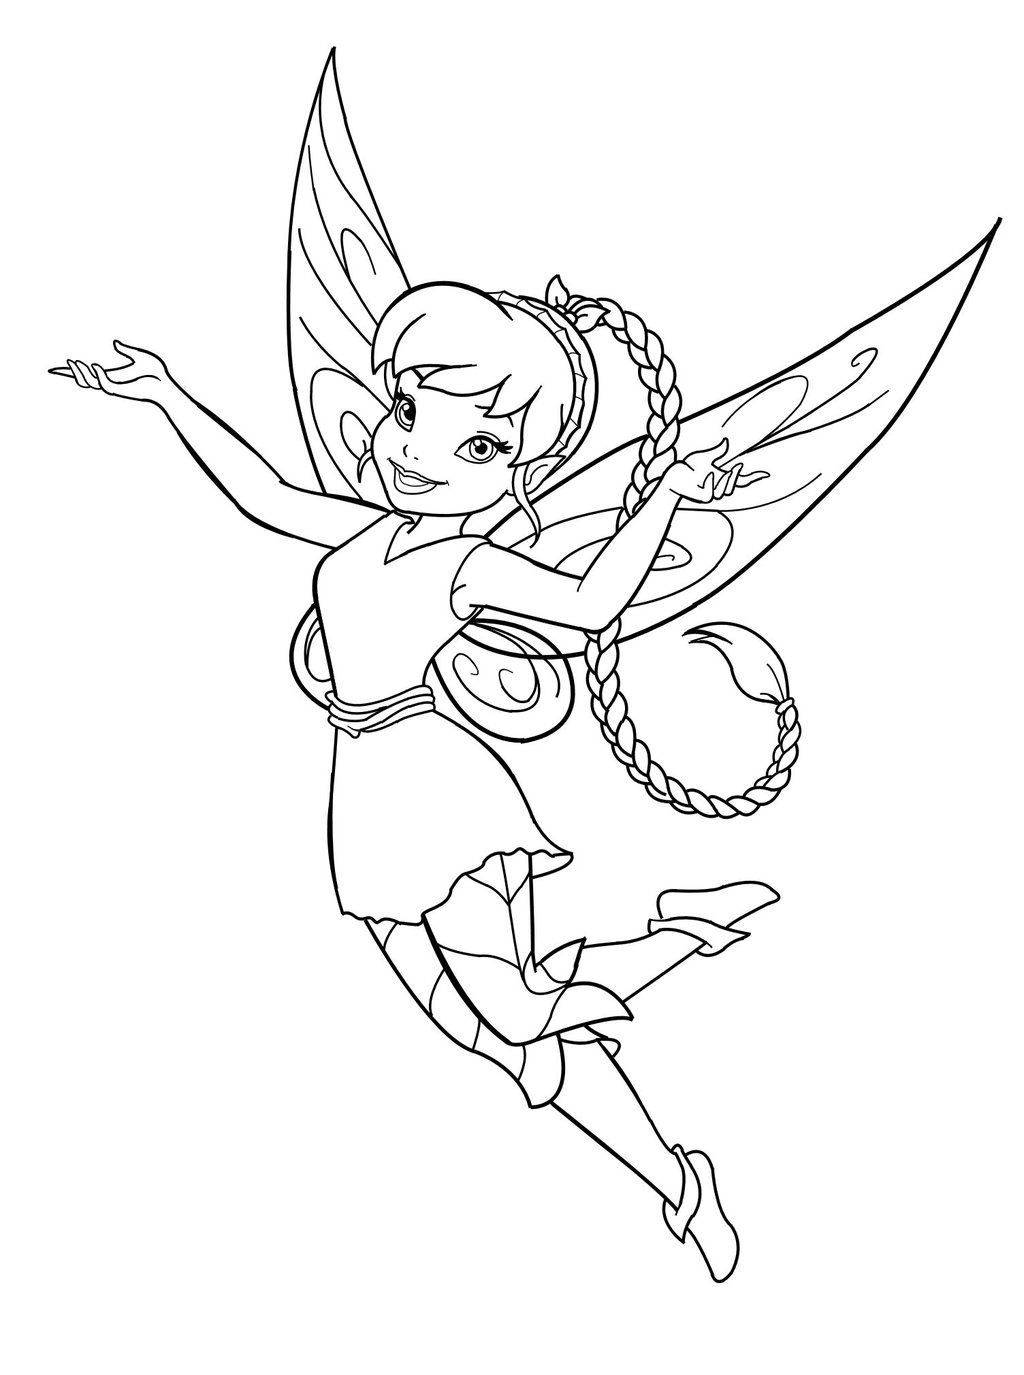 disney fairies coloring pages Free Printable Fairy Coloring Pages For Kids | Coloring Therapy  disney fairies coloring pages